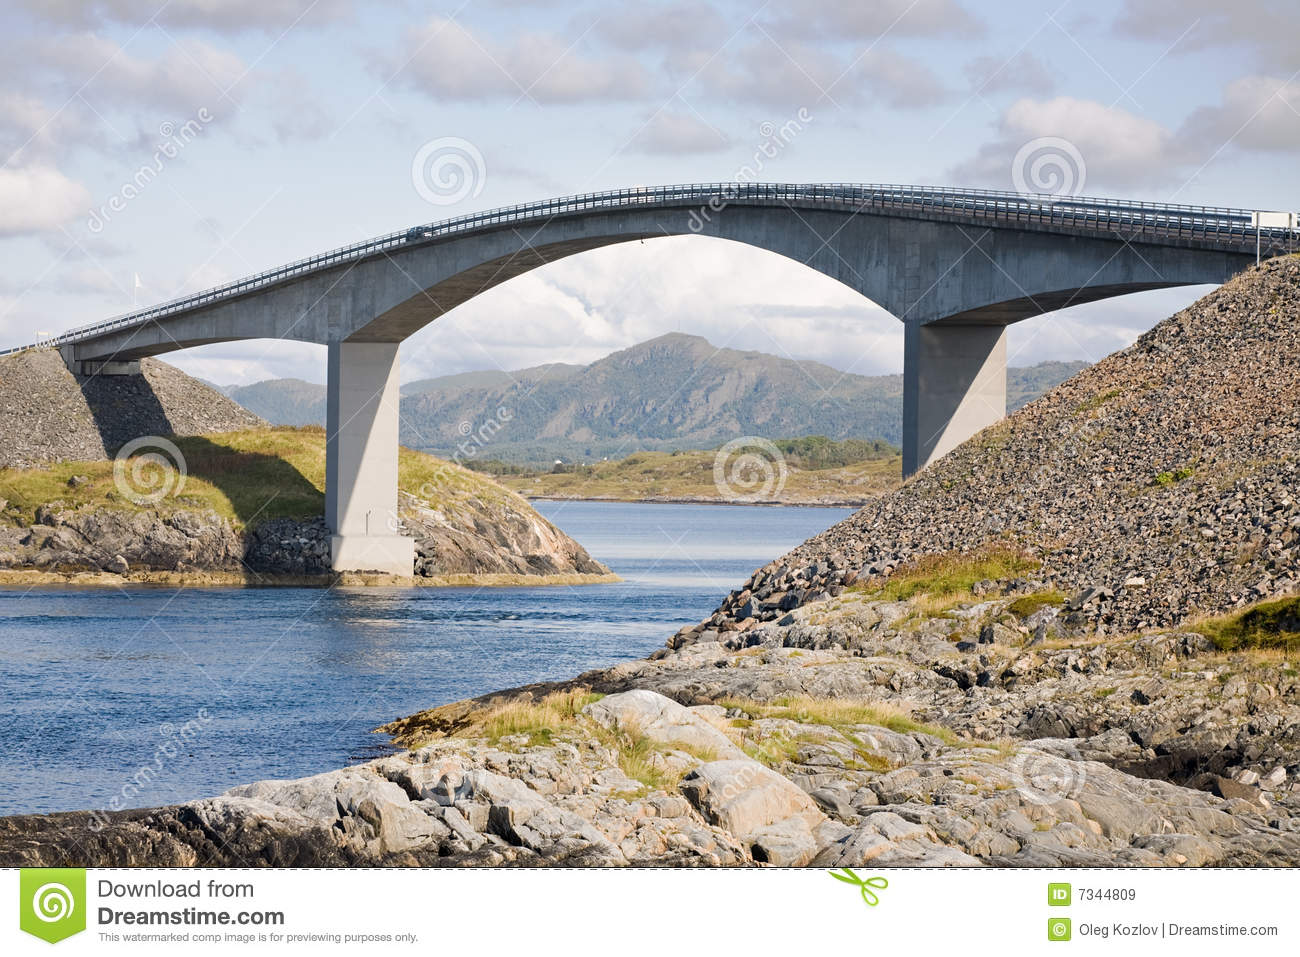 Reinforced Concrete Bridge Royalty Free Stock Images - Image: 7344809